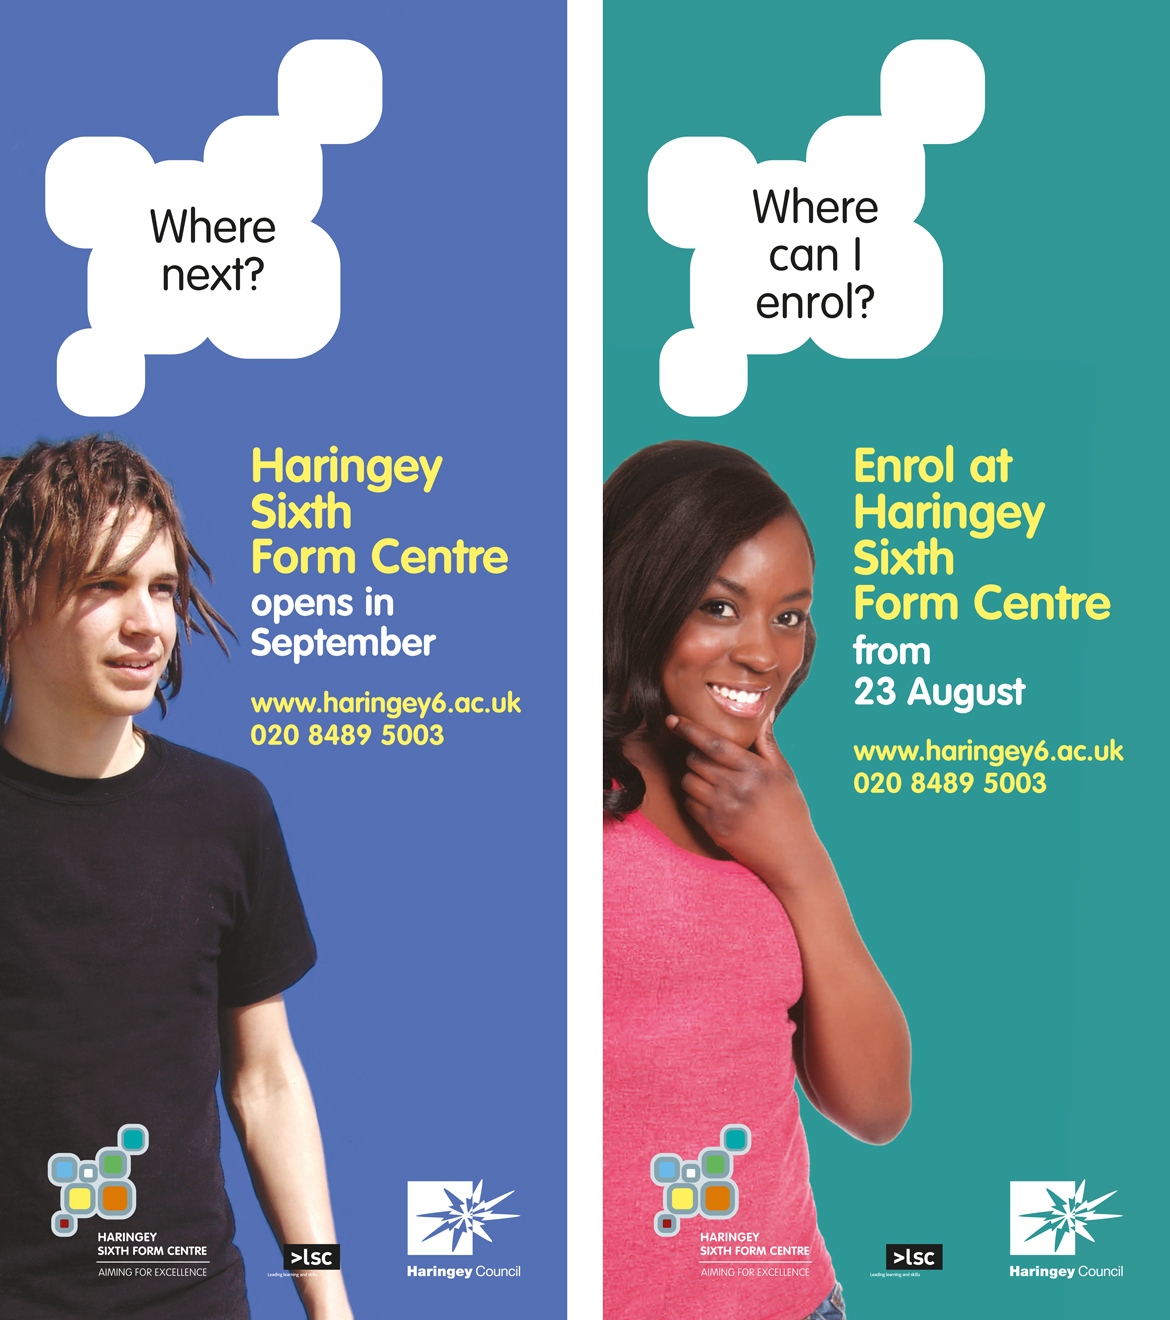 Haringey Council Sixth Form